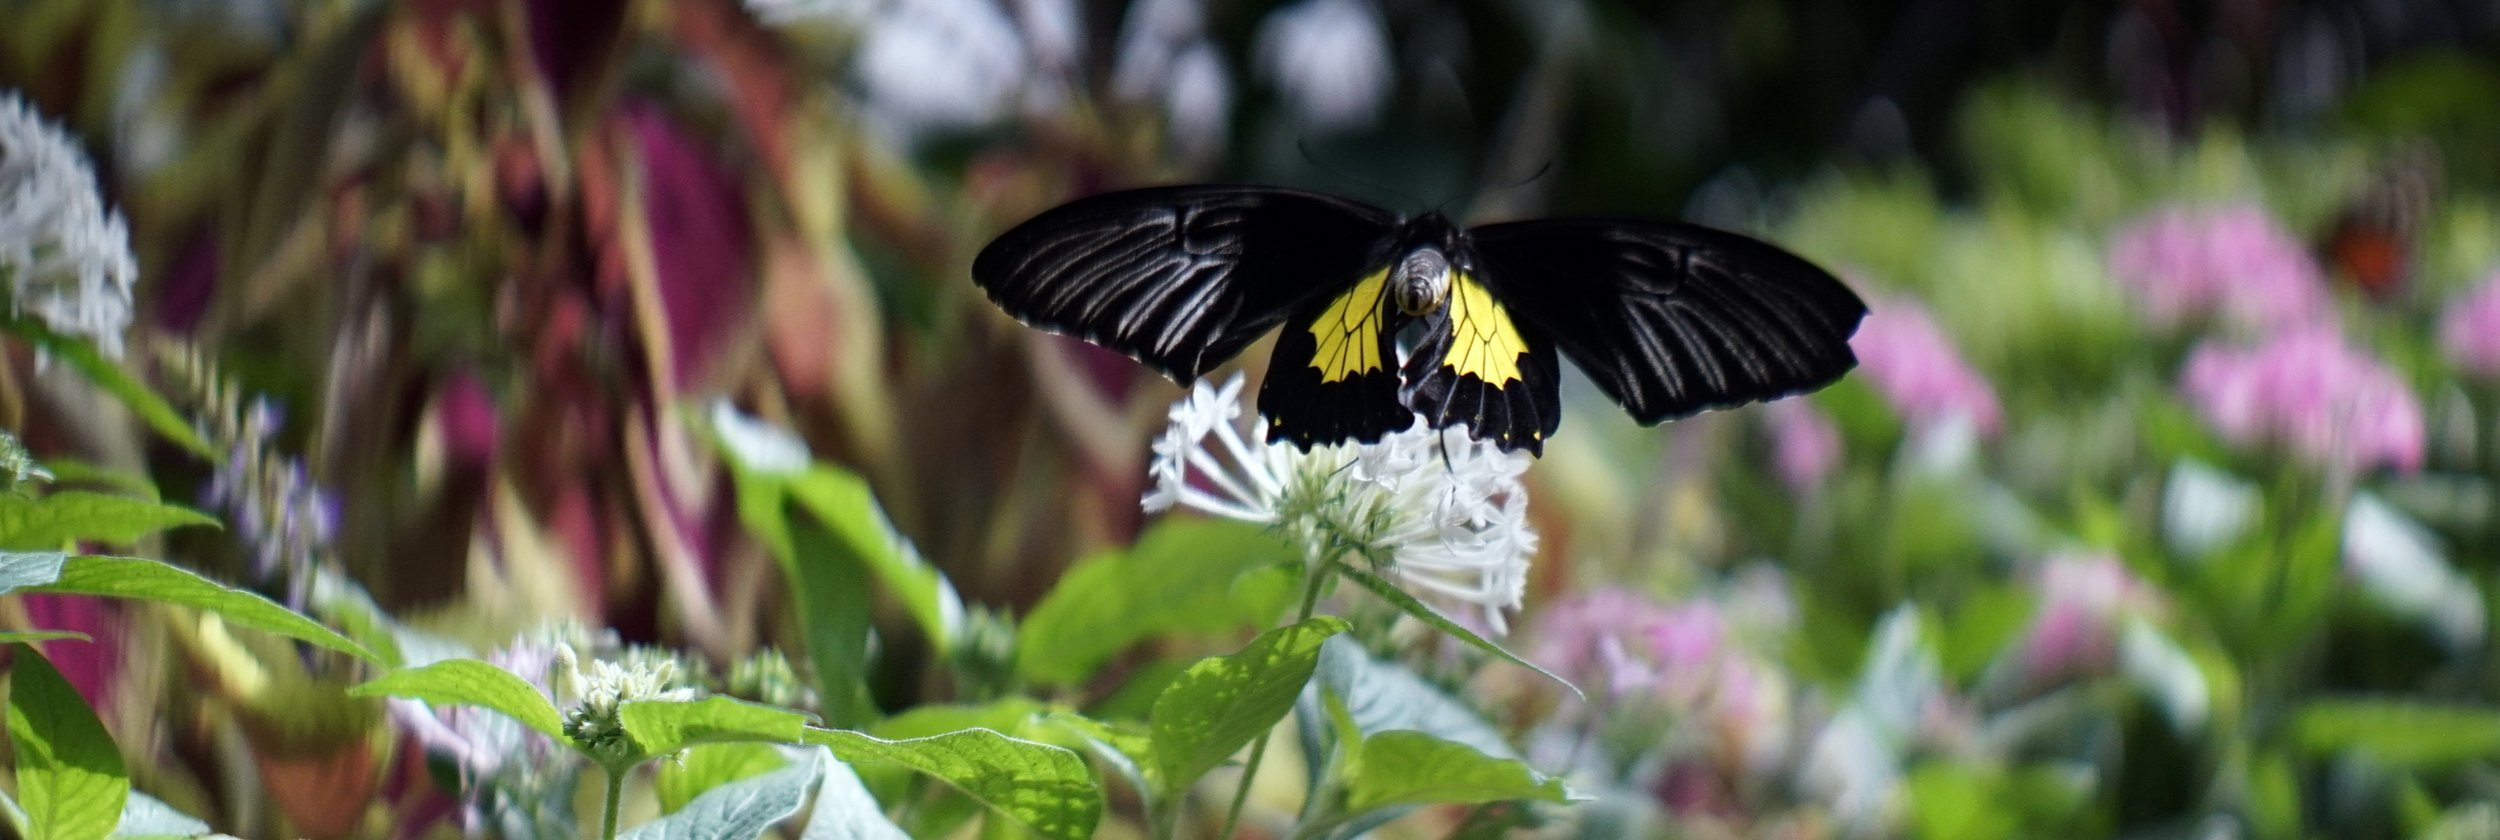 Lomo 100mm anamorphic lens | Original Butterfly House - Mackinac Island, MI. Photo by: Keith Nickoson